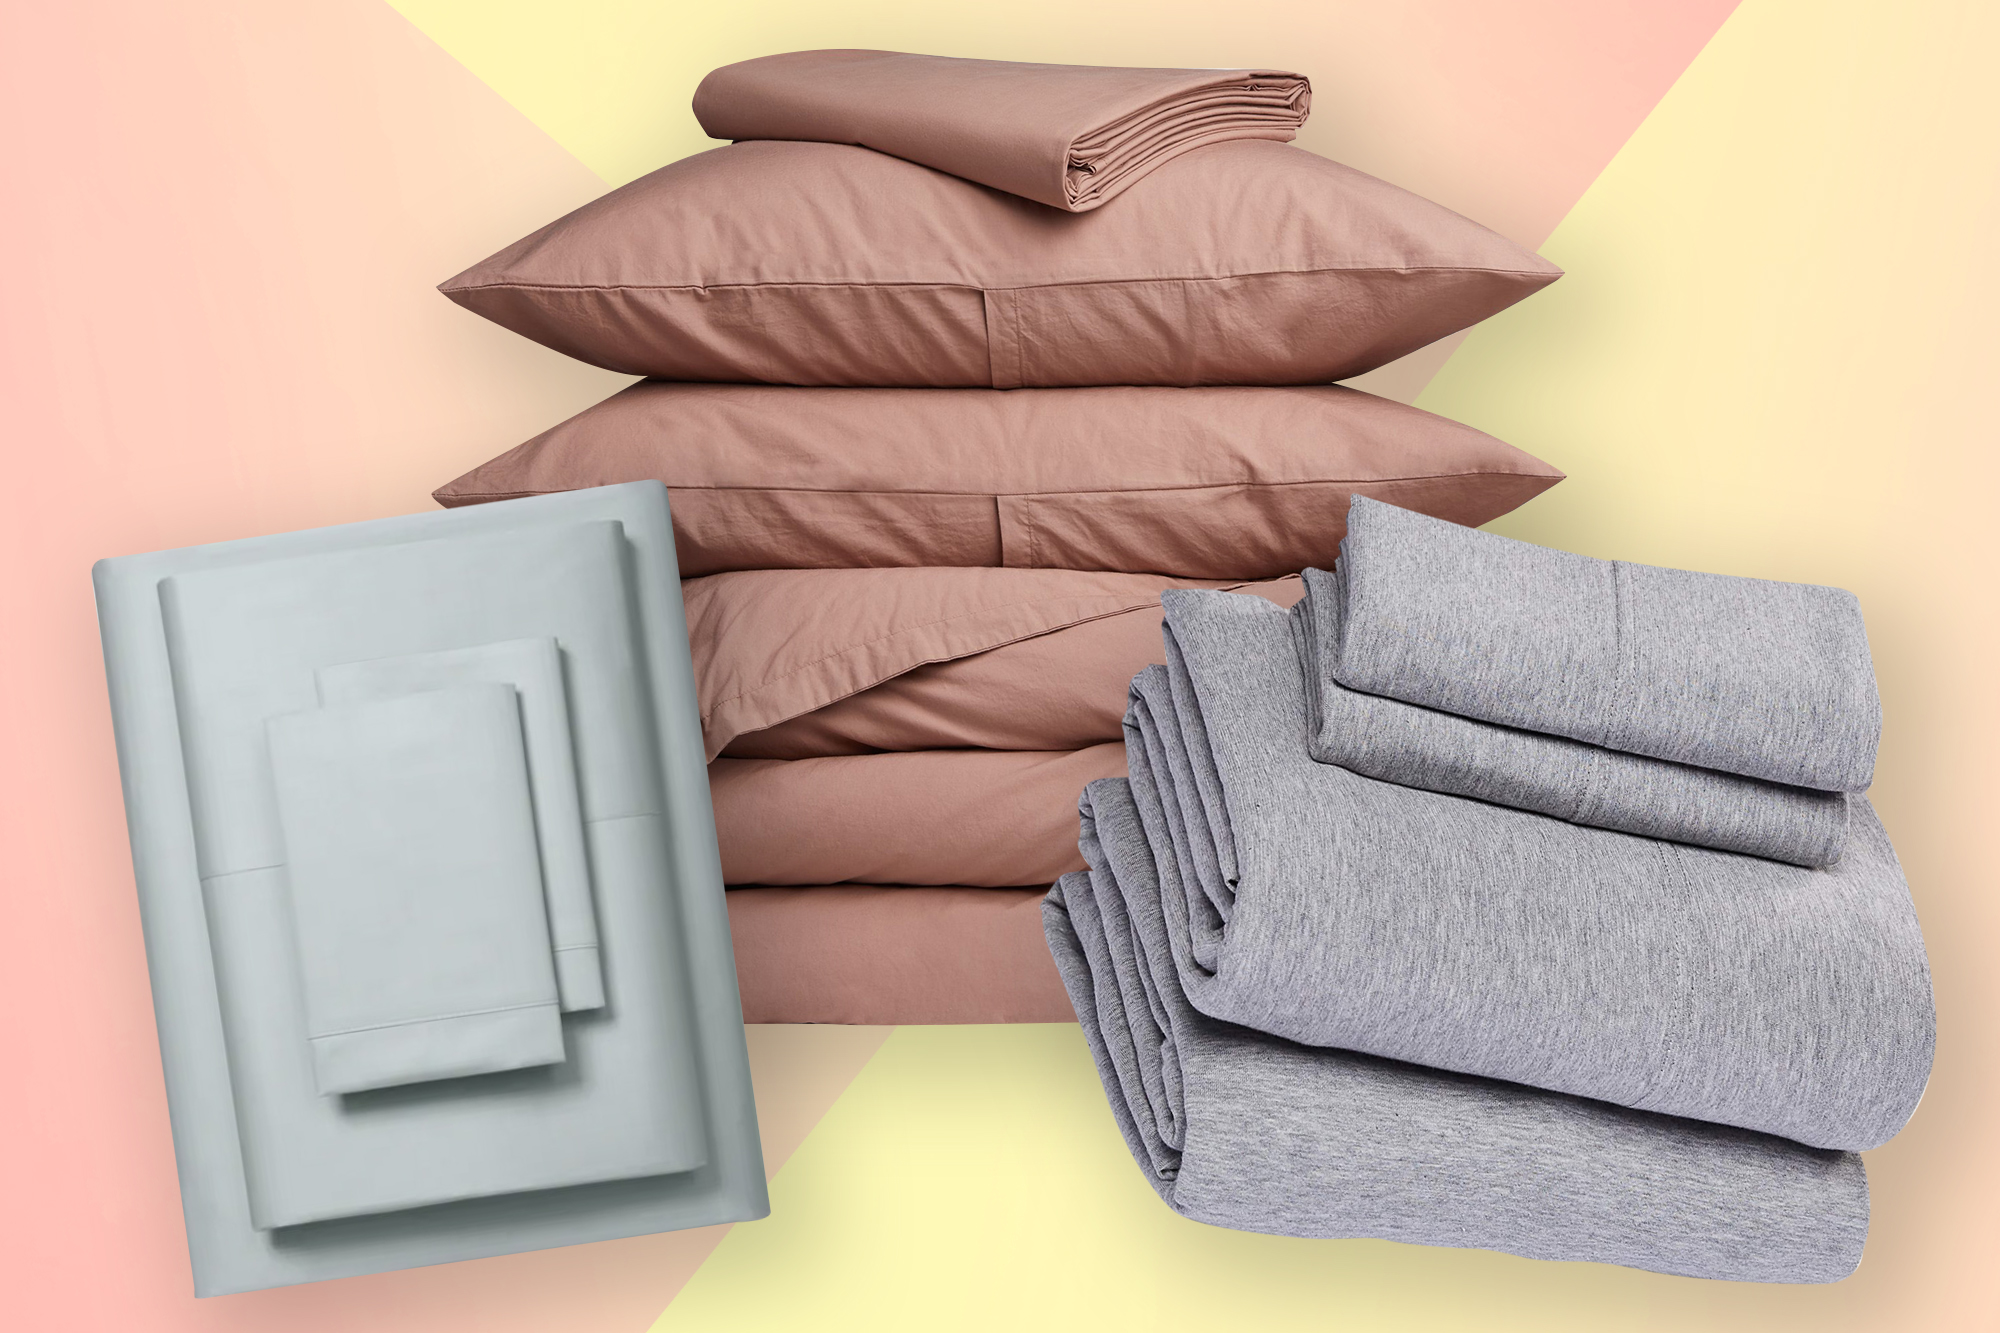 8 best sheets to buy online in 2021, based on expert opinion